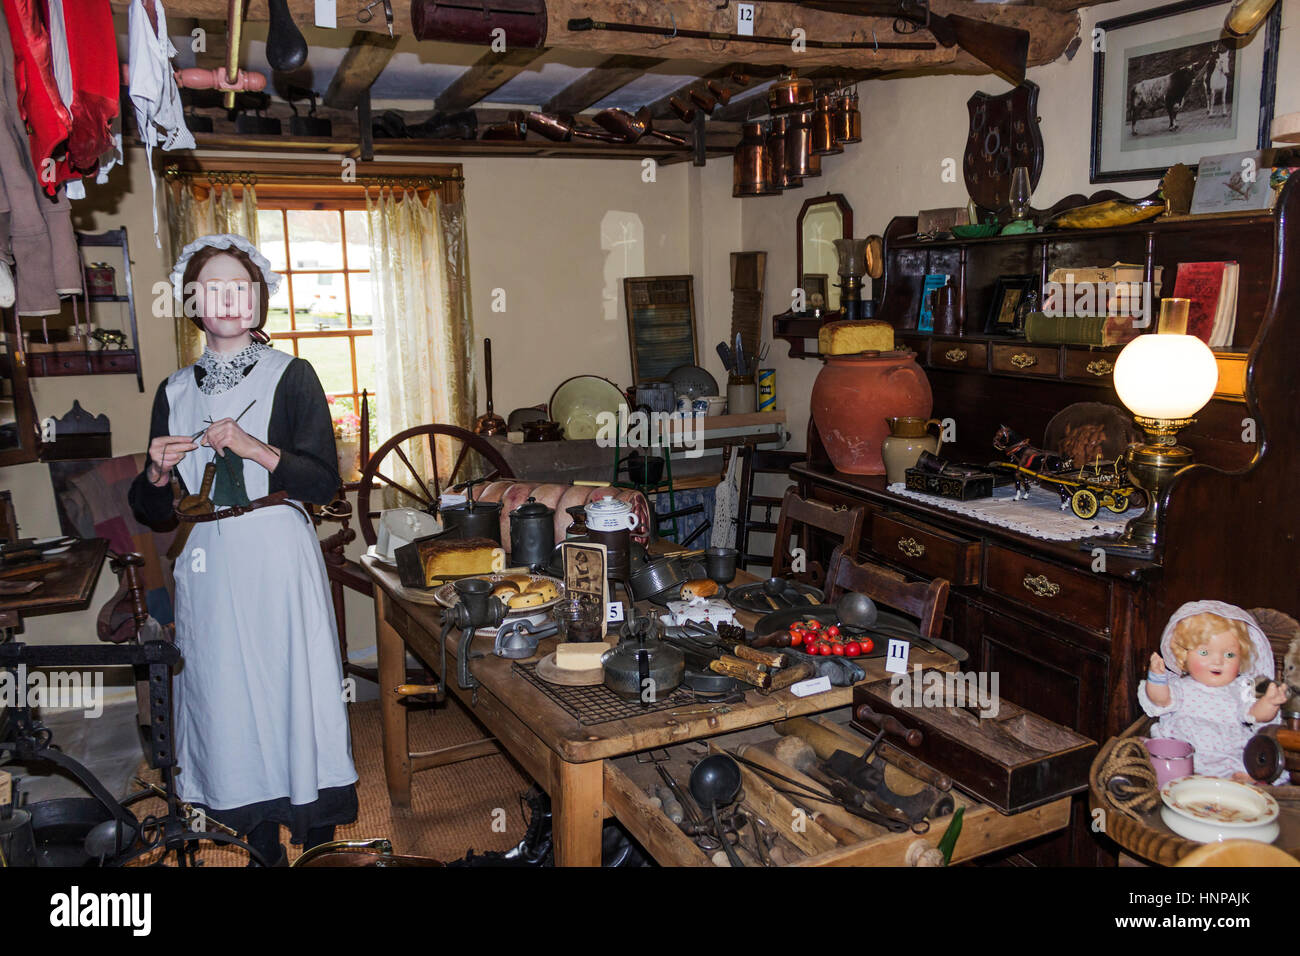 Dent Village Museum and Heritage Centre, Dent, Yorkshire Dales, England. Reconstruction of a 19th century kitchen - Stock Image